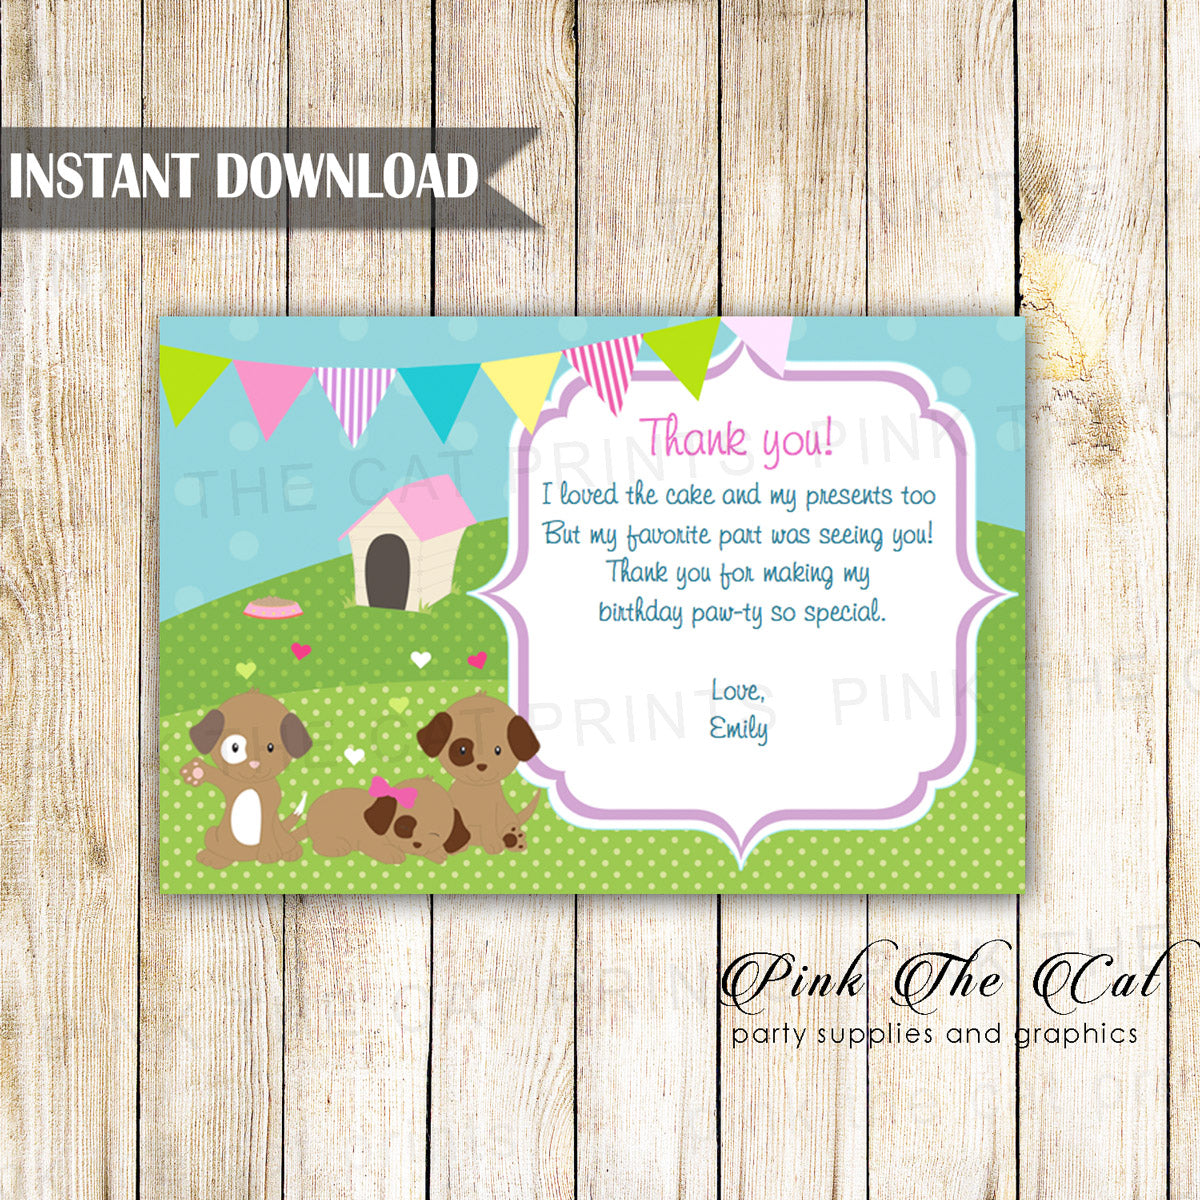 Puppy Thank You Card Kids Birthday Baby Shower Printable Pink The Cat